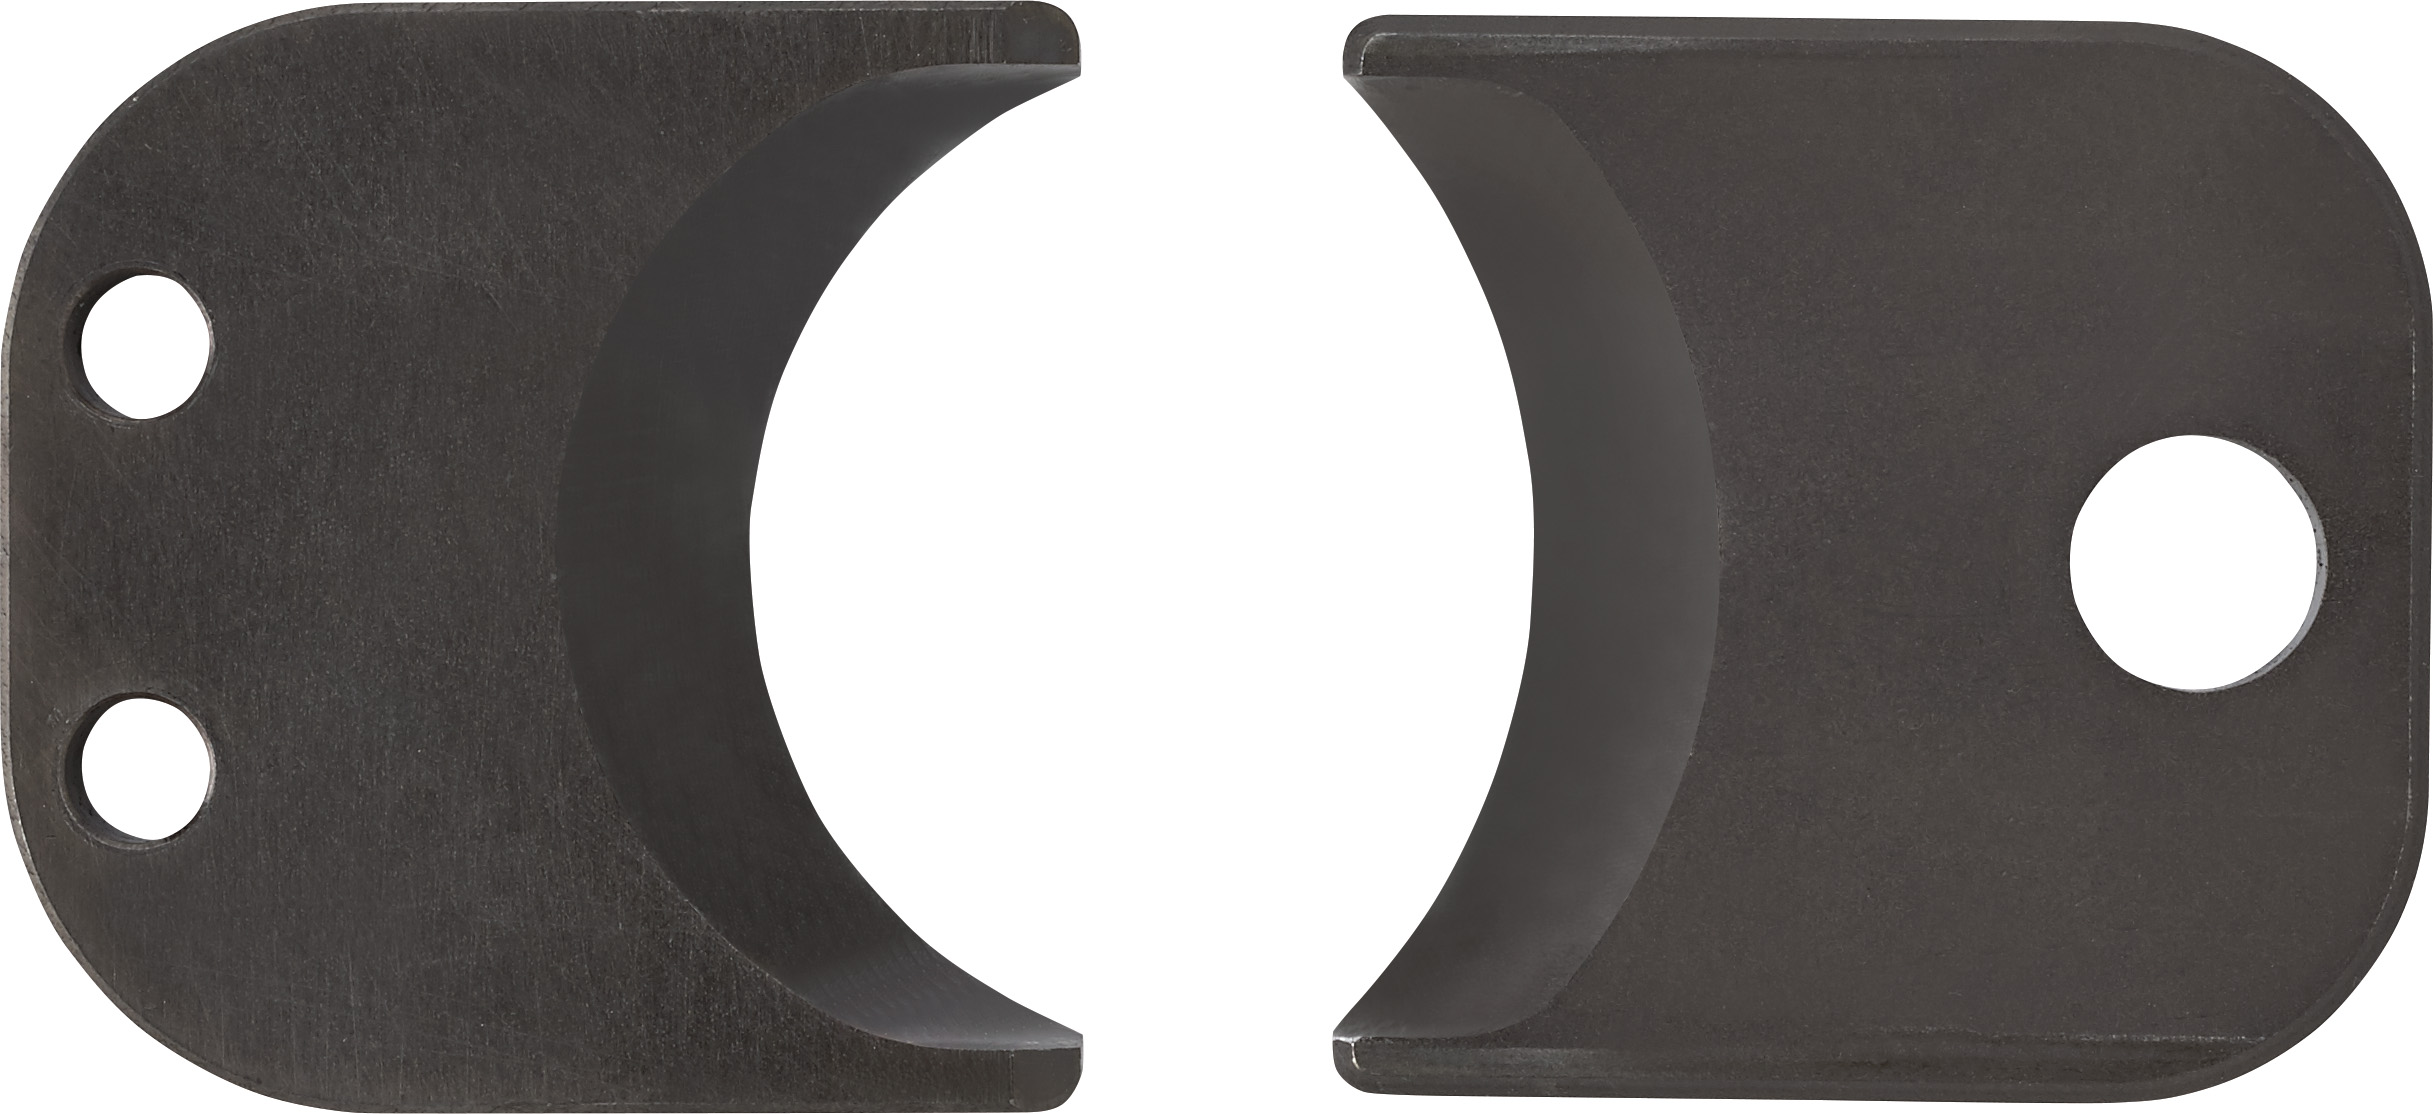 Milwaukee® 49-16-2775 Duct Mount Replacement Blade, For Use With Model 2777-21, M18™ FORCE LOGIC™ 1590 ACSR Cutter Kit